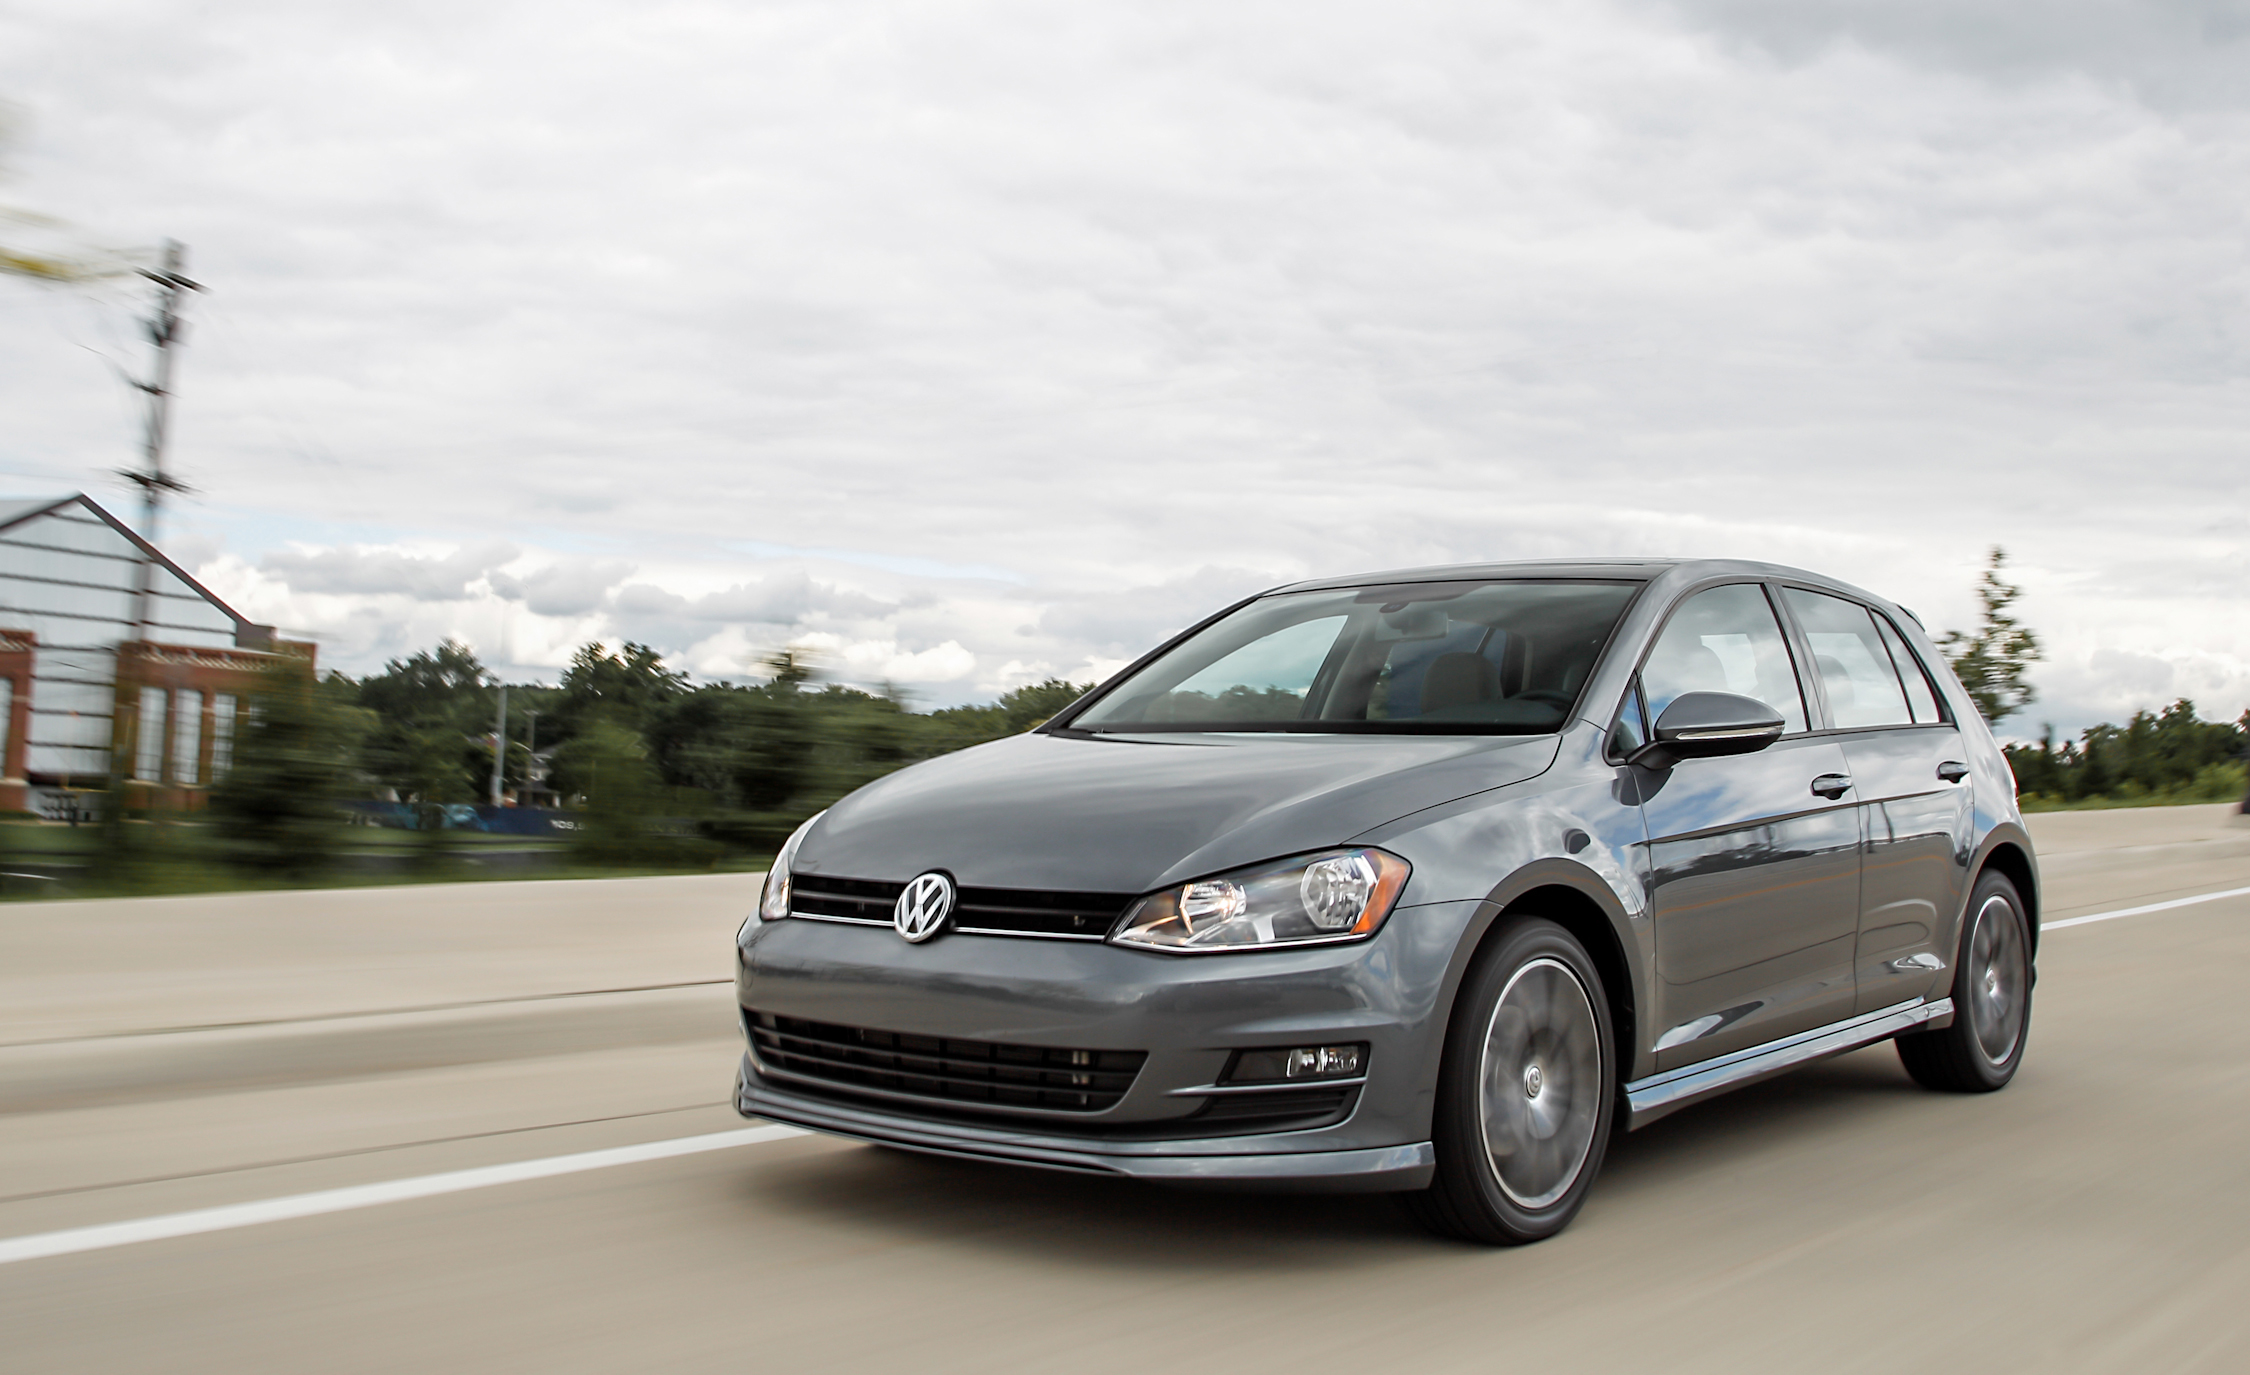 2015 volkswagen golf 1 8t tsi 8660 cars performance reviews and test drive. Black Bedroom Furniture Sets. Home Design Ideas